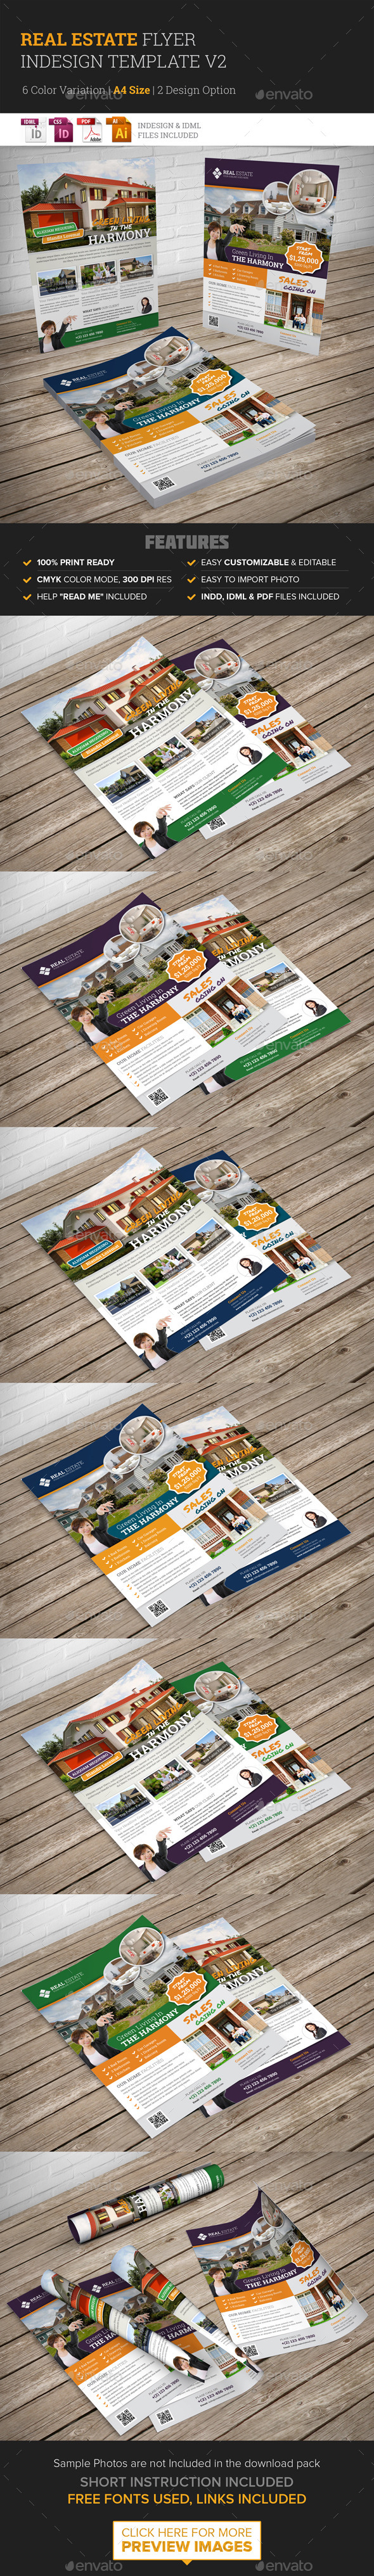 Real Estate Flyer Indesign Template v2 - Corporate Flyers